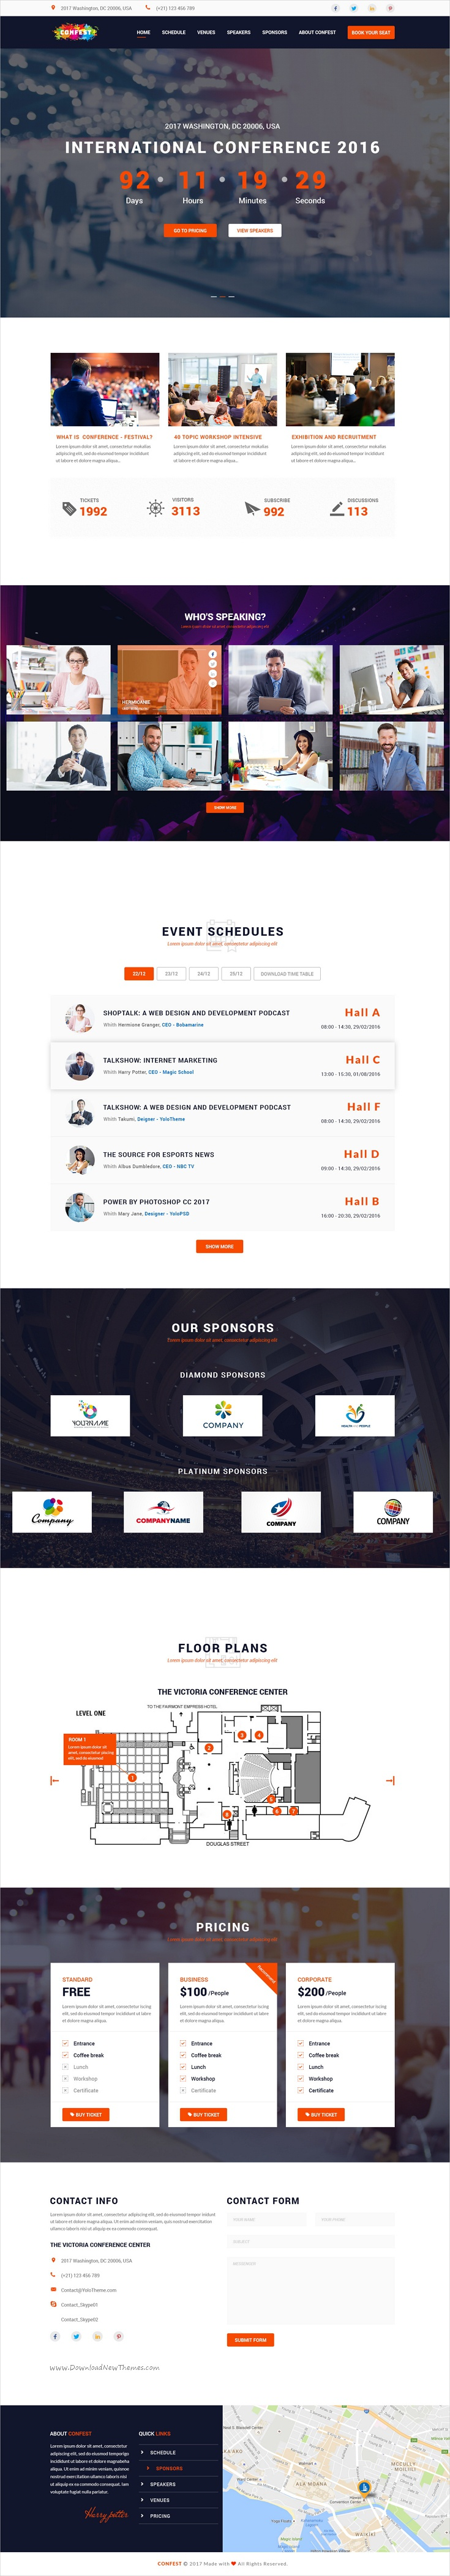 Confest  MultiPurposes Event And Conference Psd Template  Psd